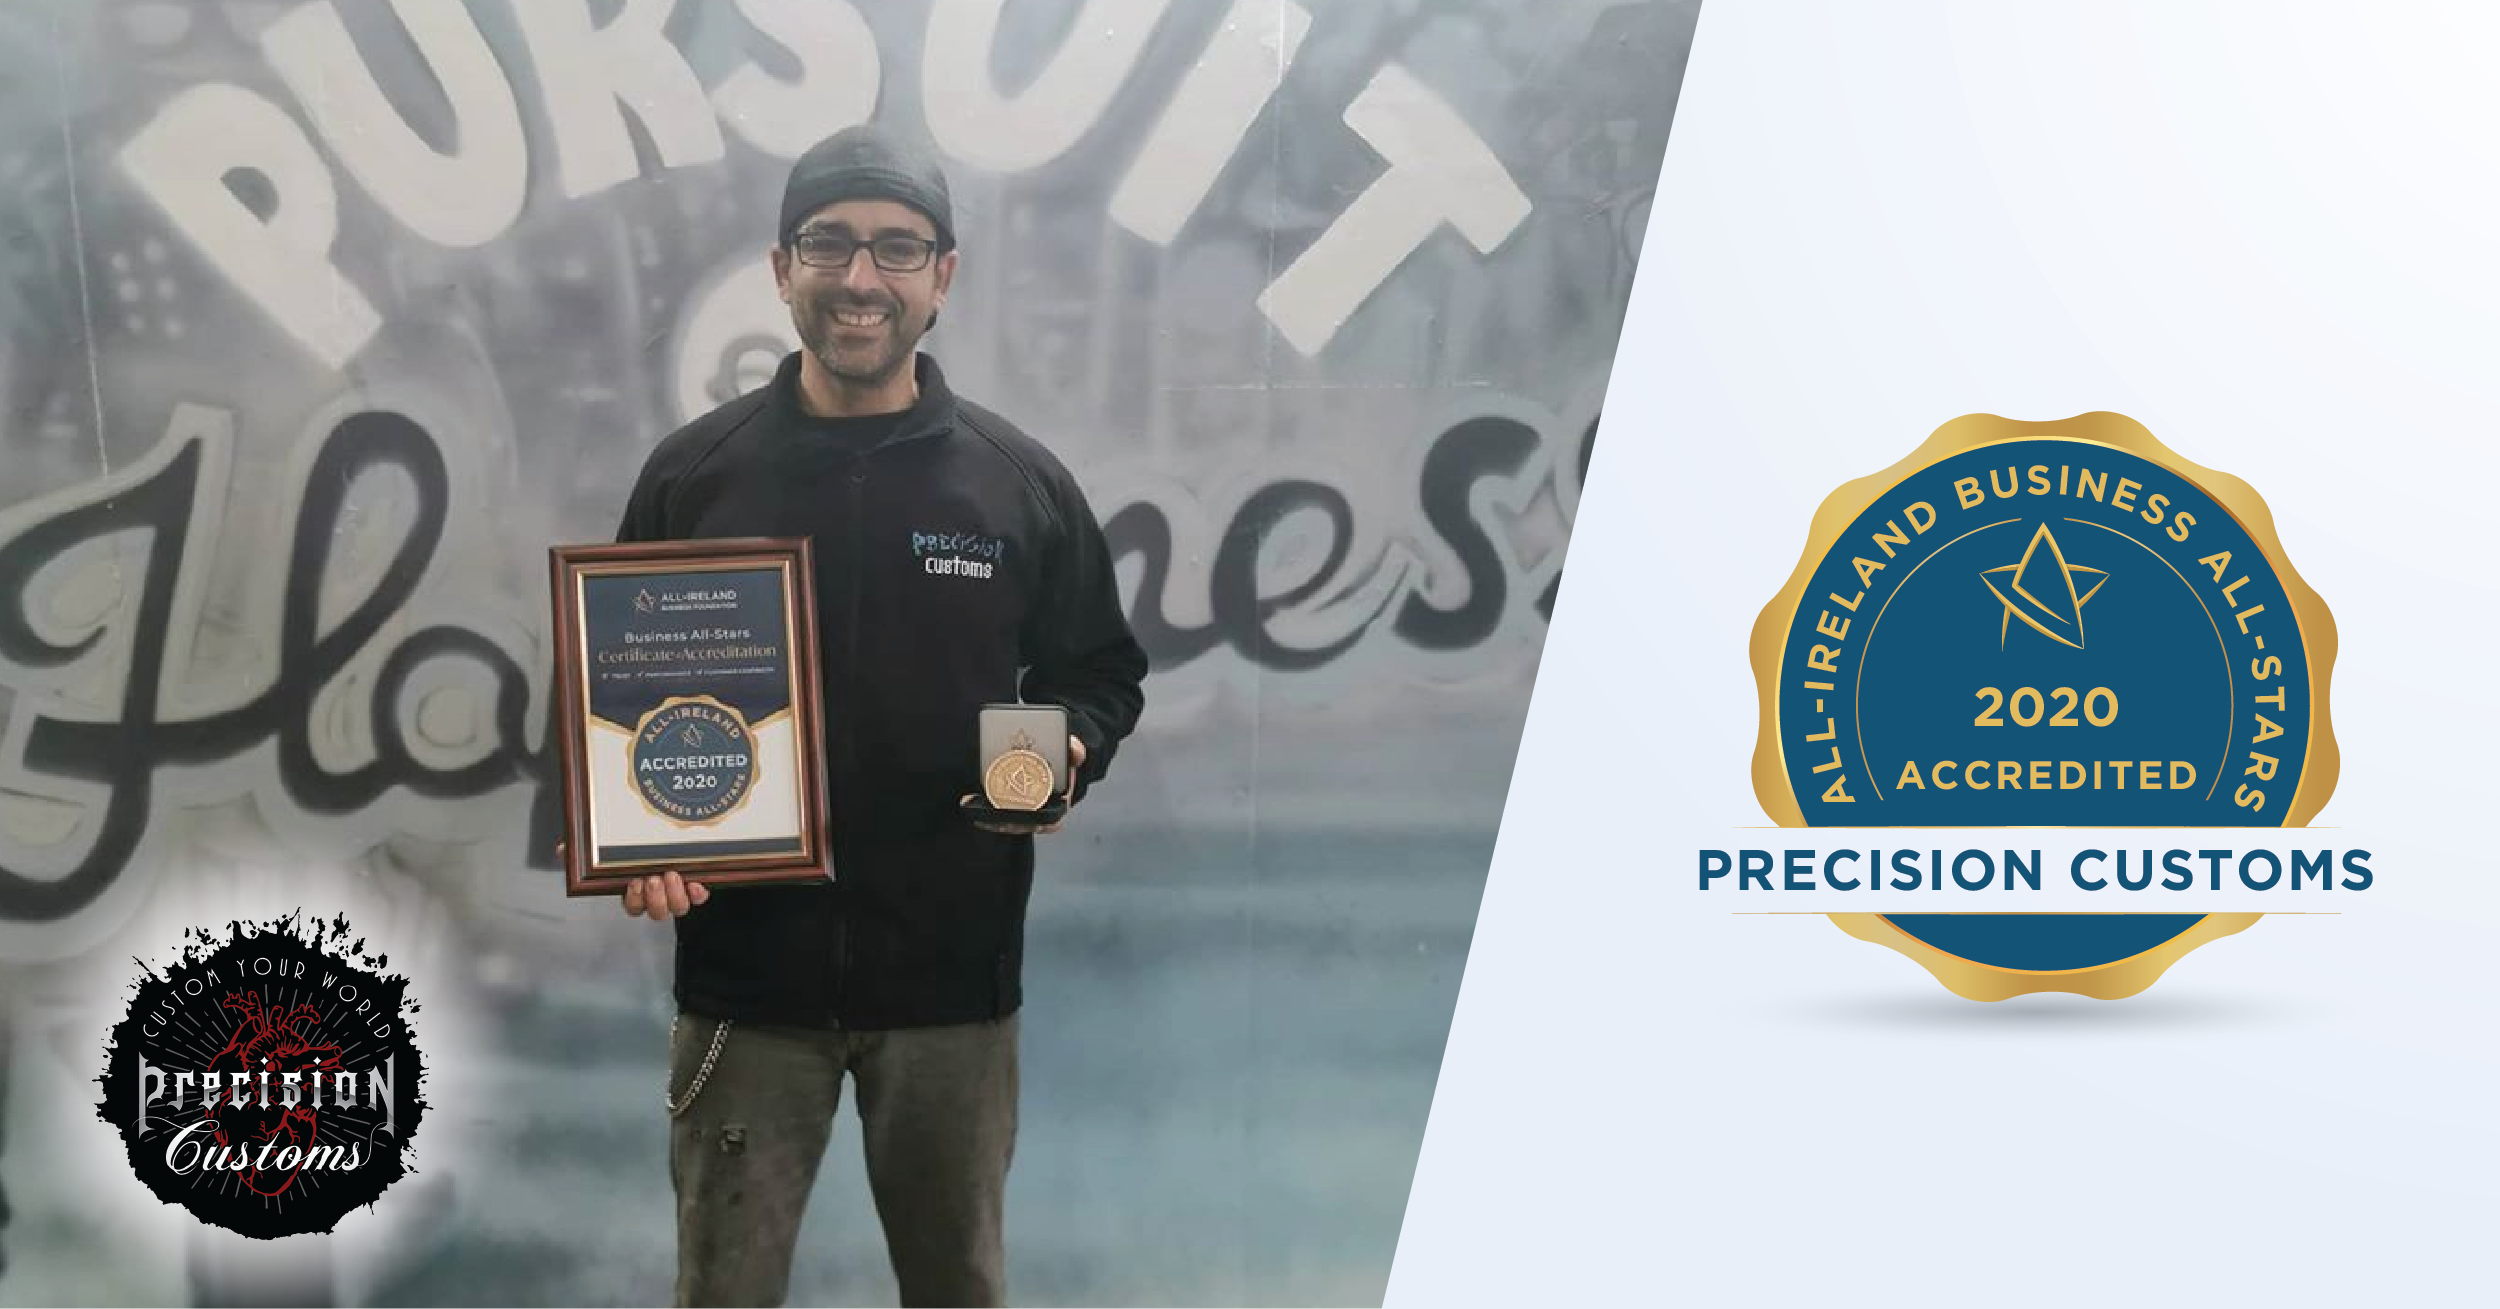 Rafael Costa - MD, Precision Customs With His Business All-Star Accreditation.